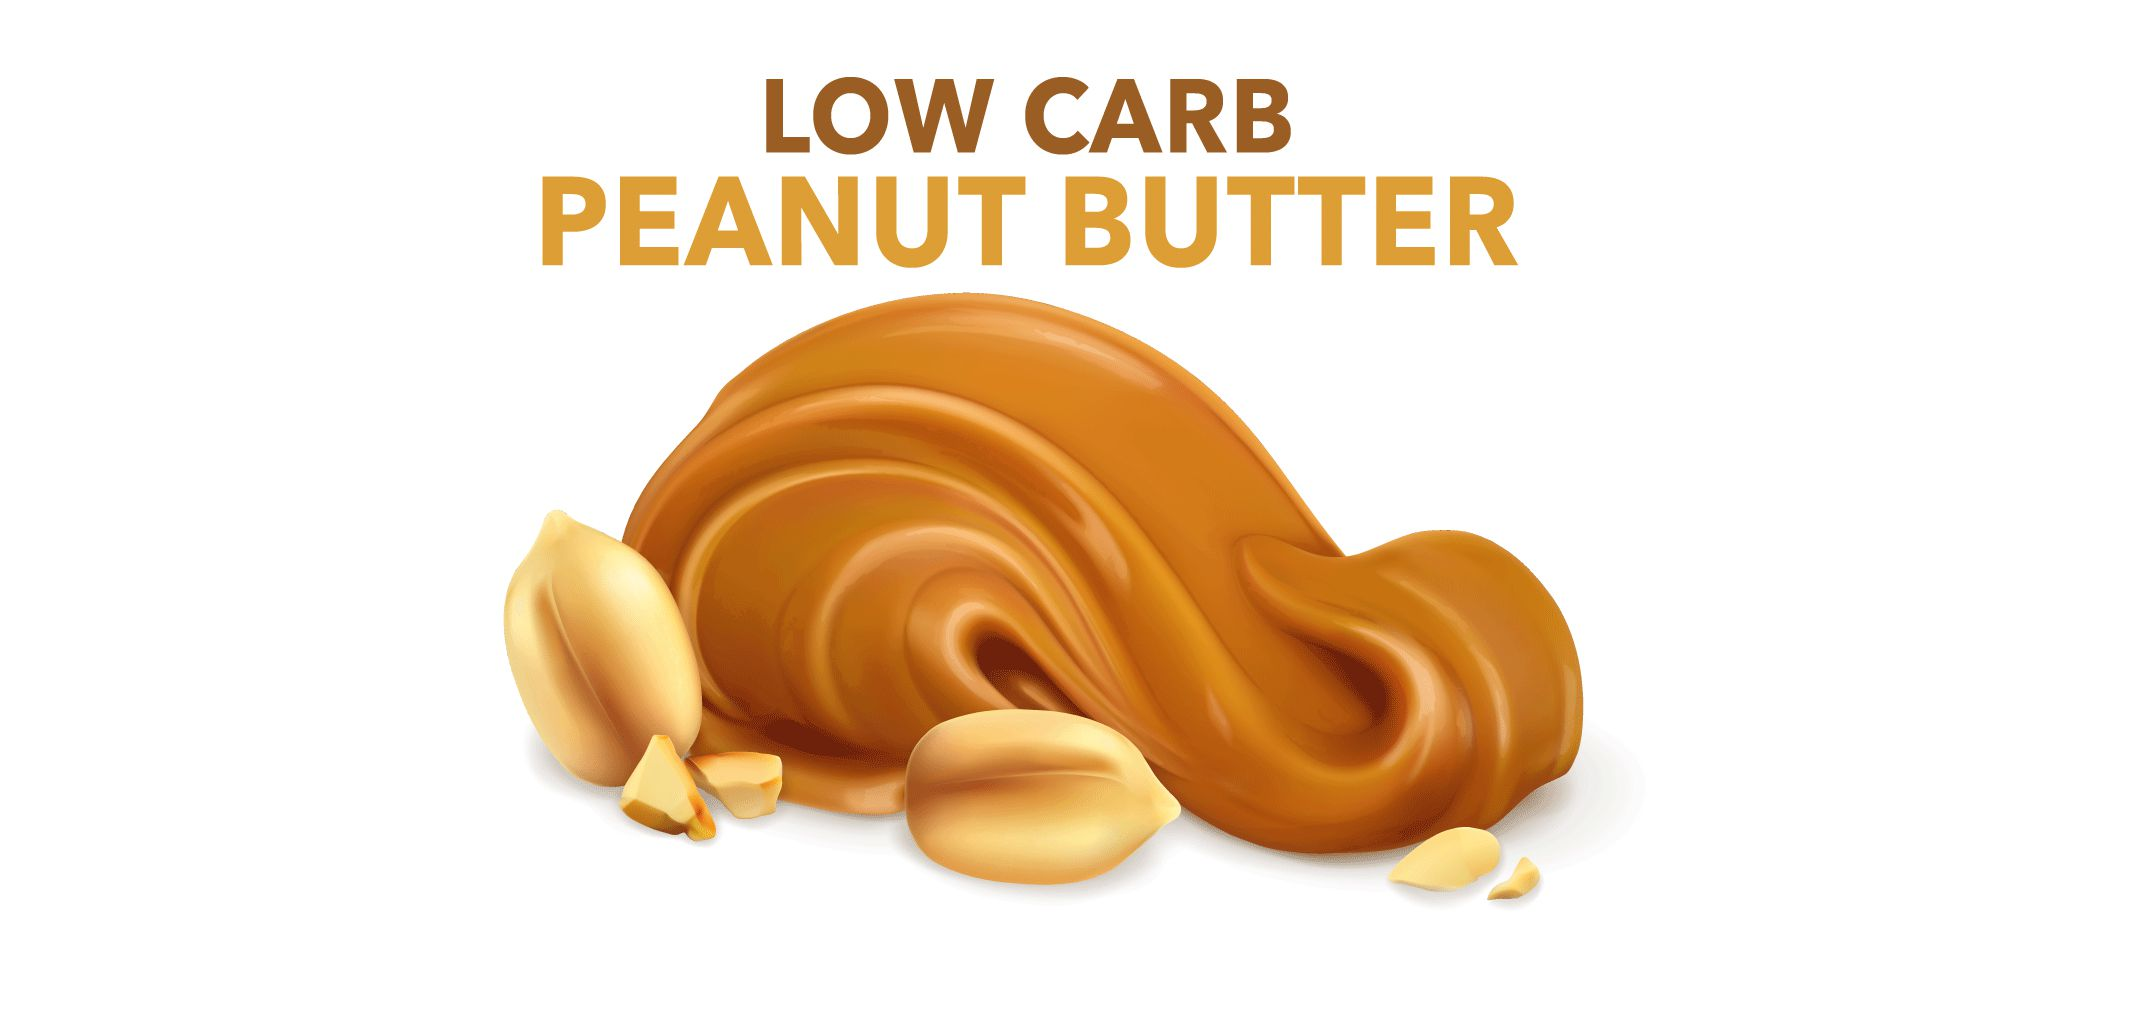 carbolite low carb no sugar added peanut butter label image